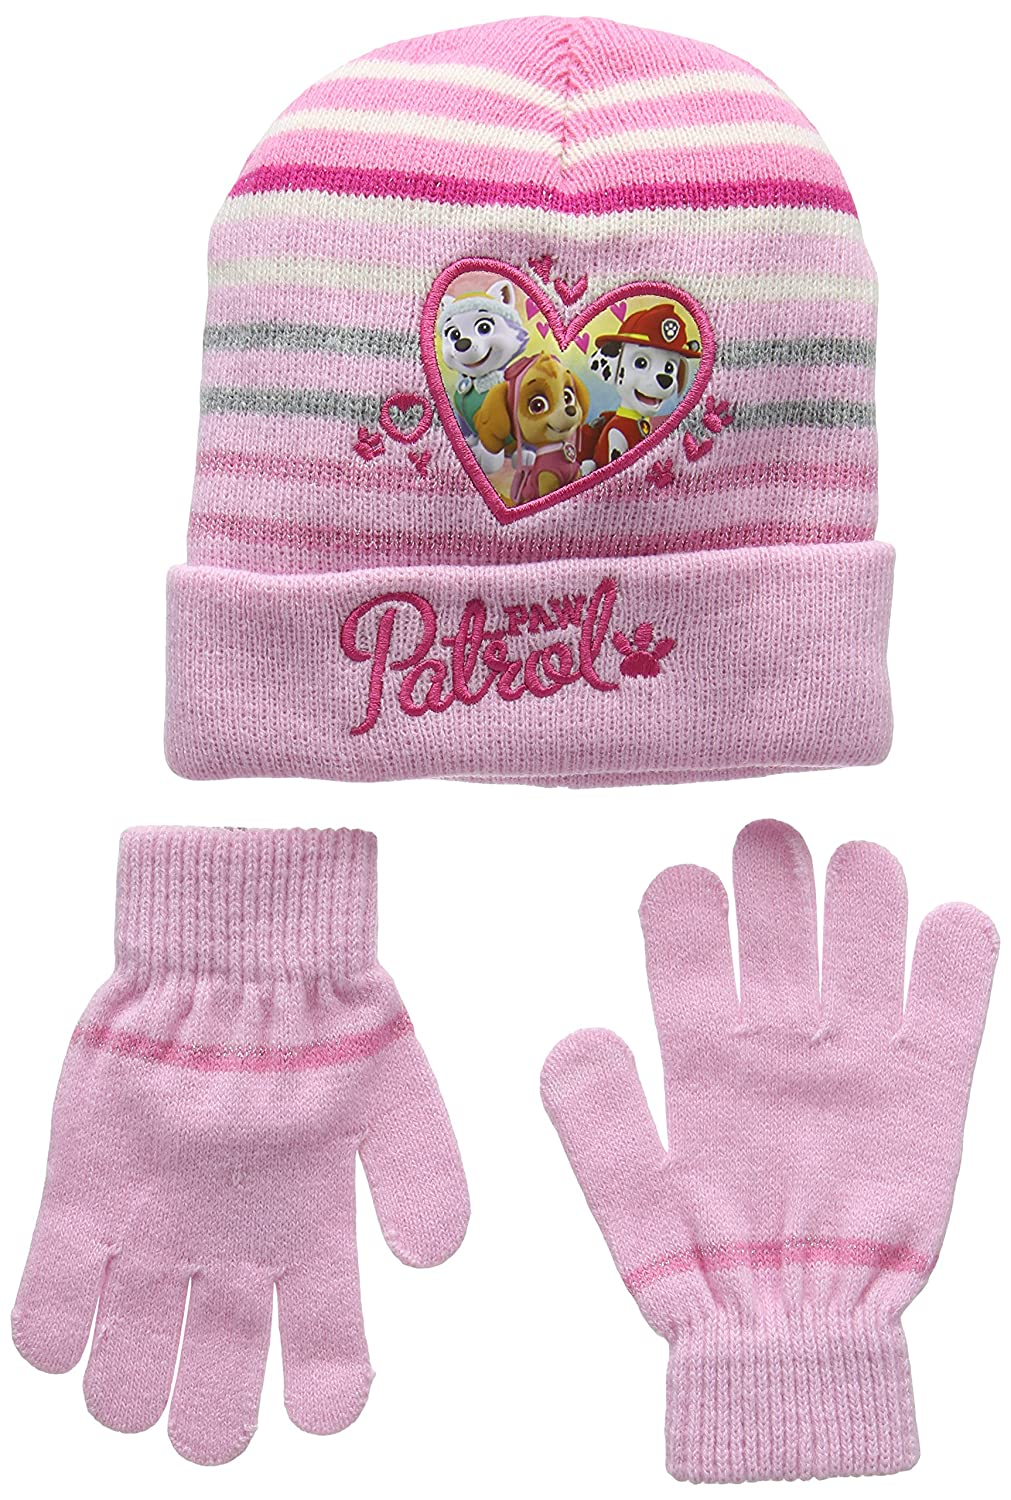 Nickelodeon Girl's Paw Patrol Heart Shape Scarf, Hat and Glove Set